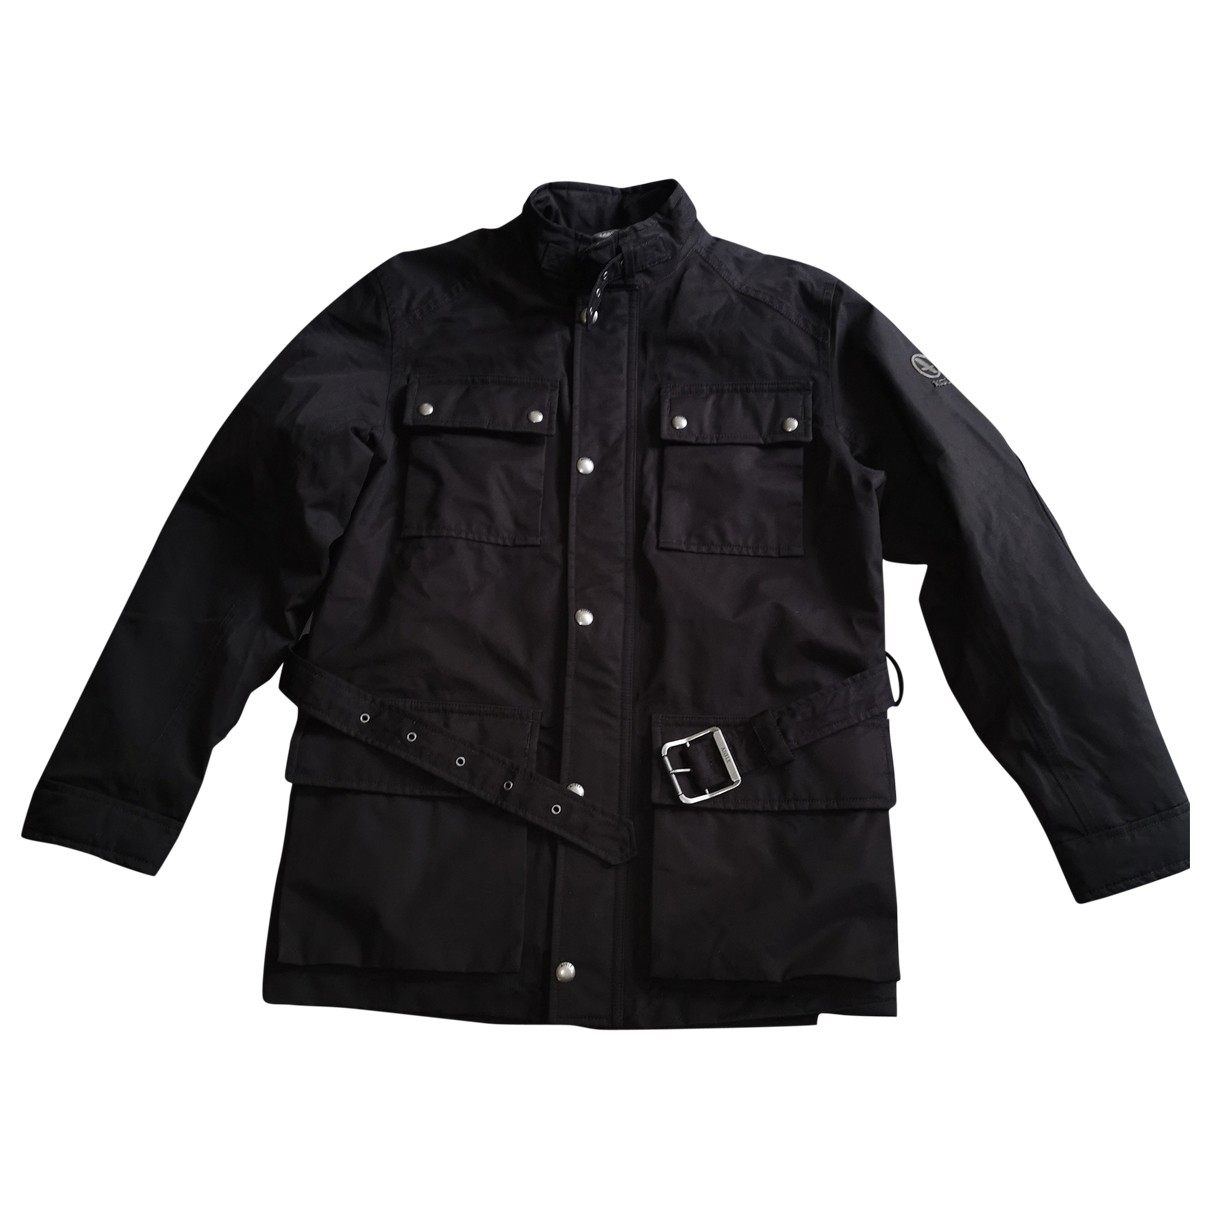 Aigle \N Black jacket  for Men L International